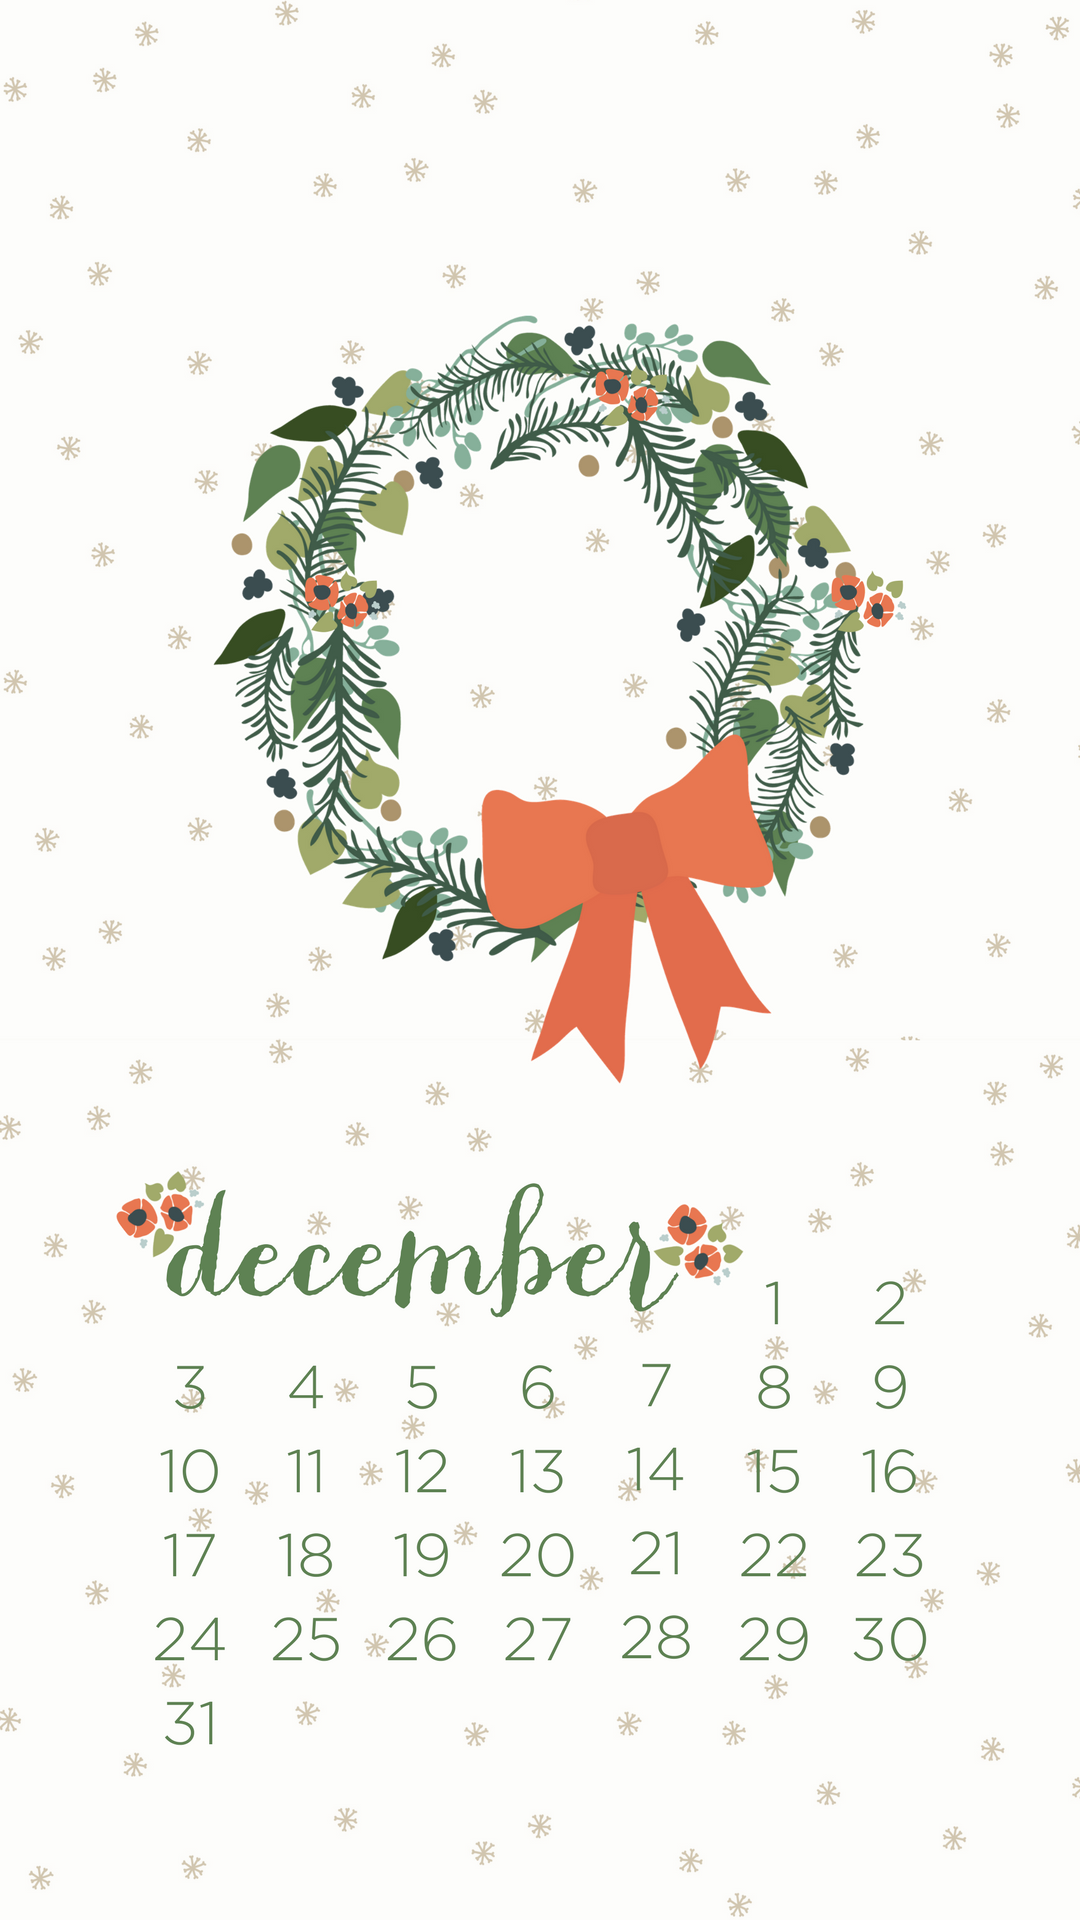 December 2018 Snow Wallpaper Calendar